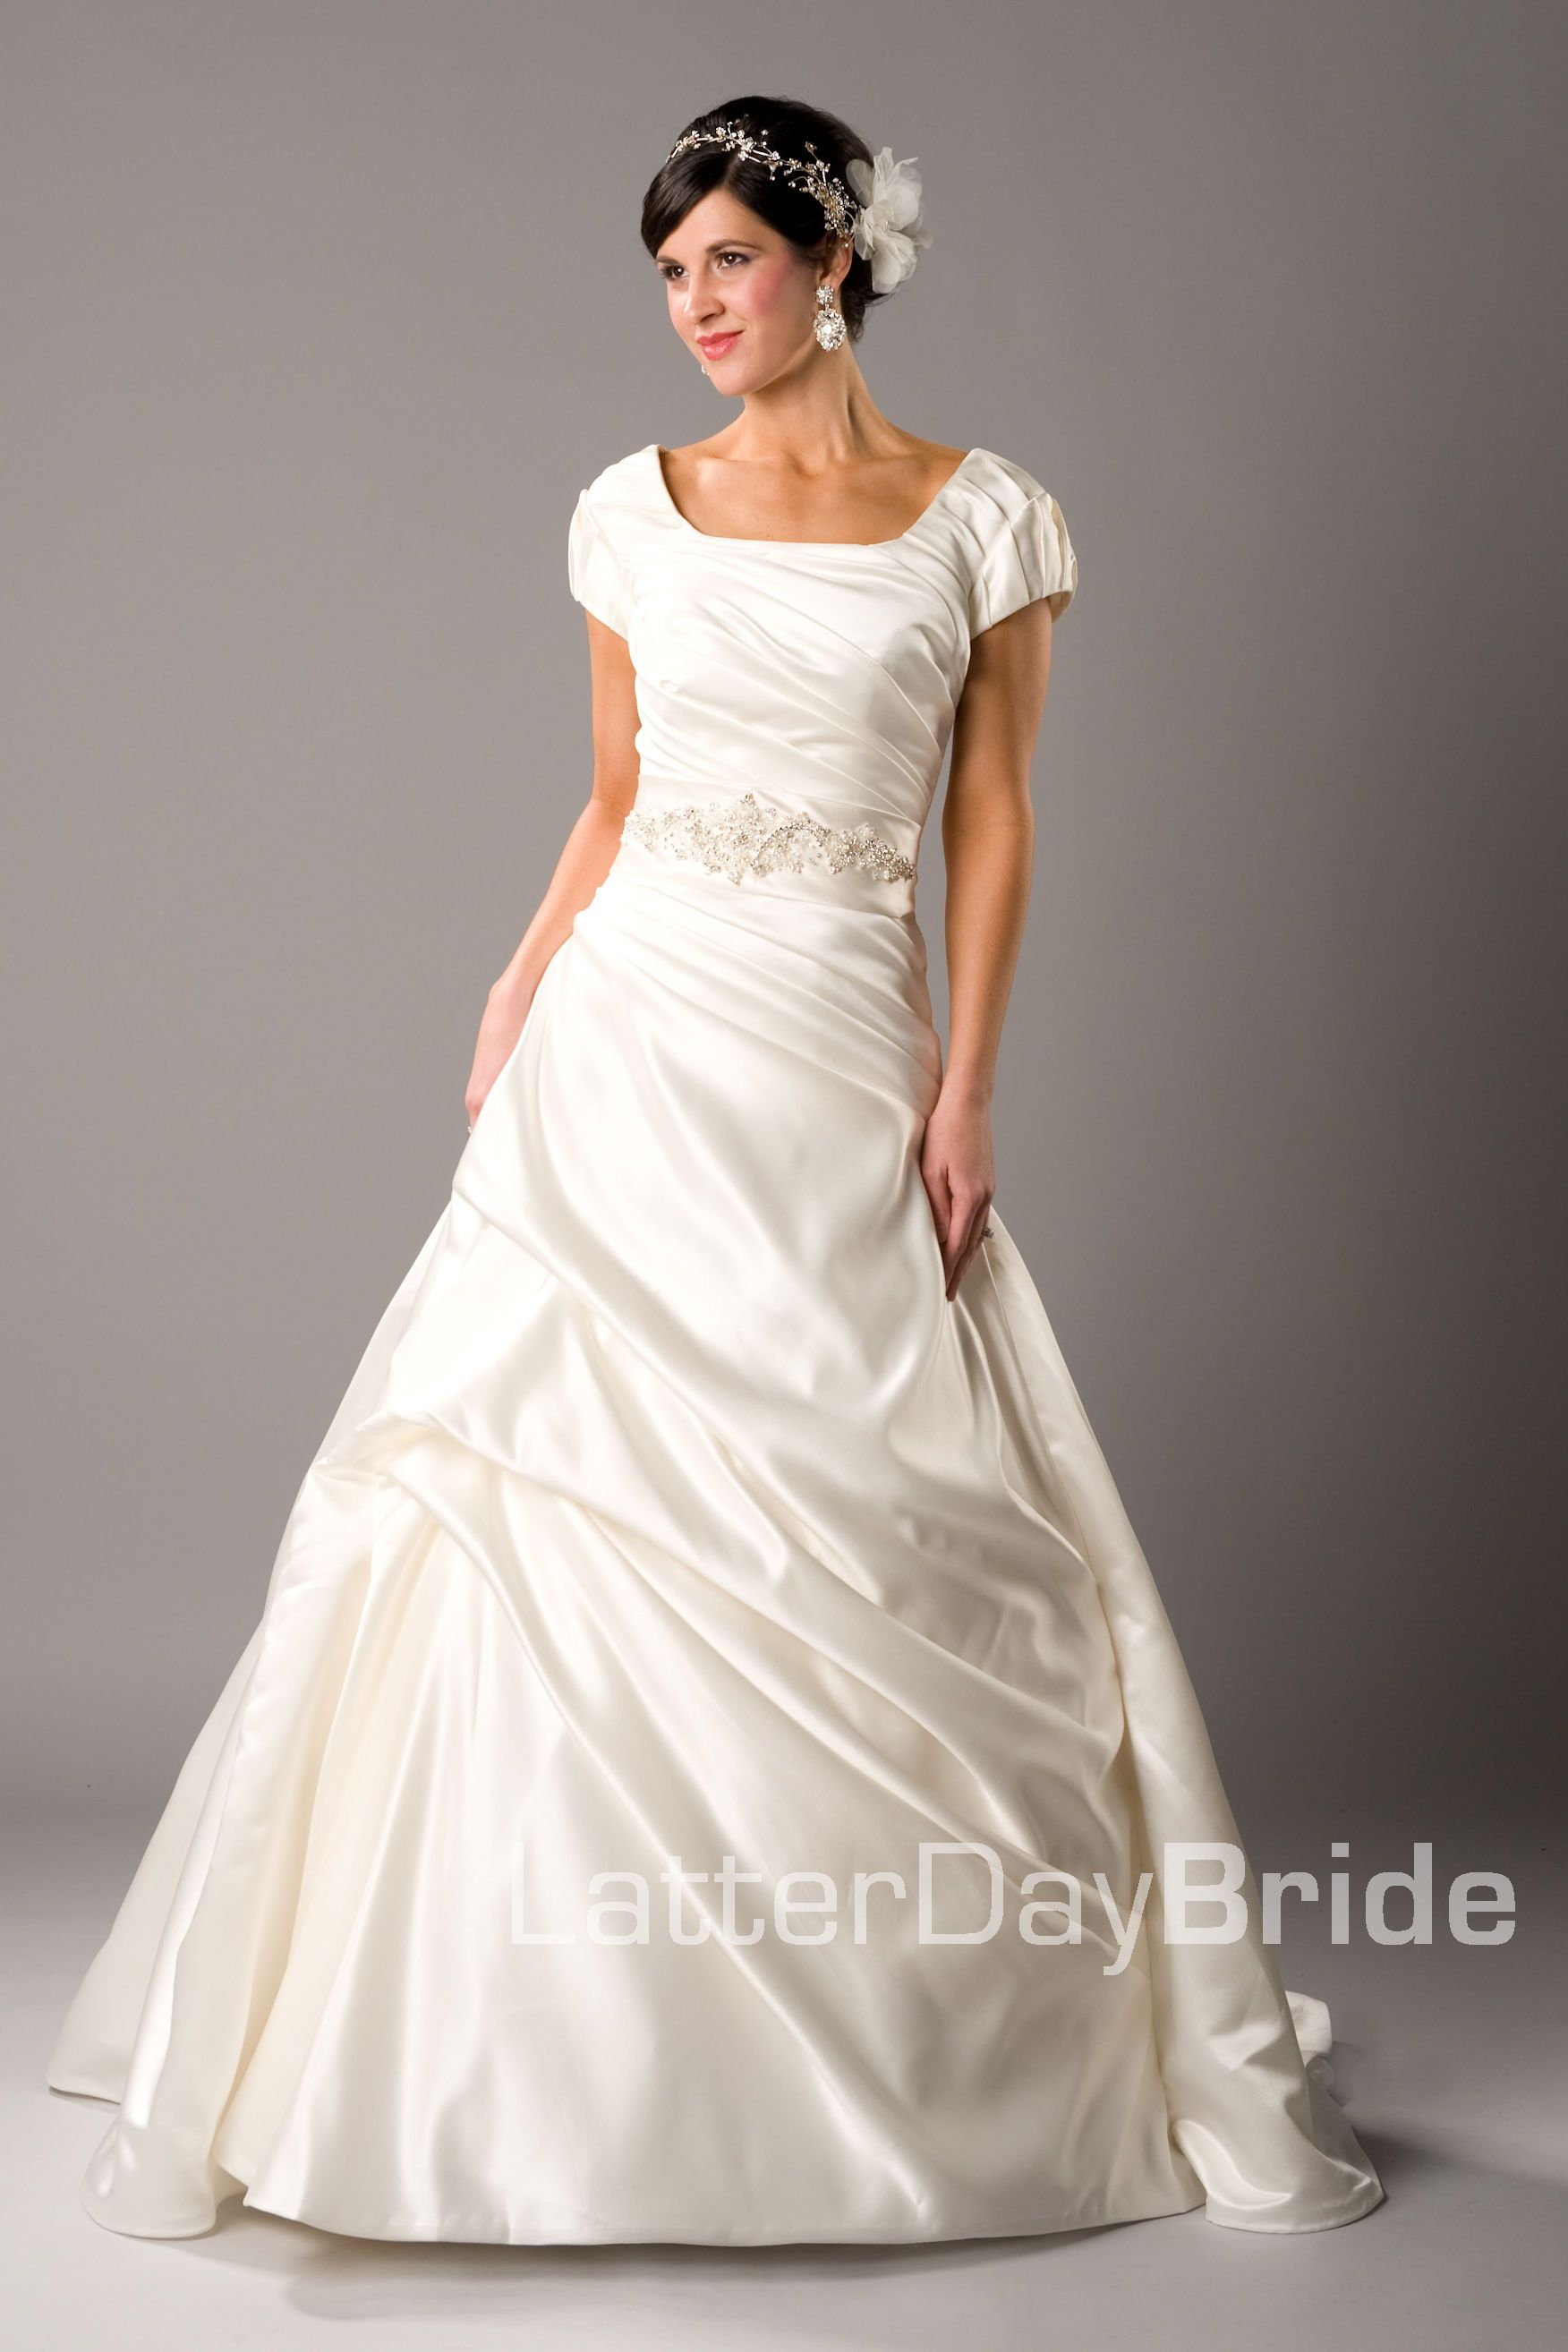 Latter Day Bride. This website has lots of dresses that are modest. Not just wedding dresses either. Bridesmaids, Mother of the Bride, prom, etc.